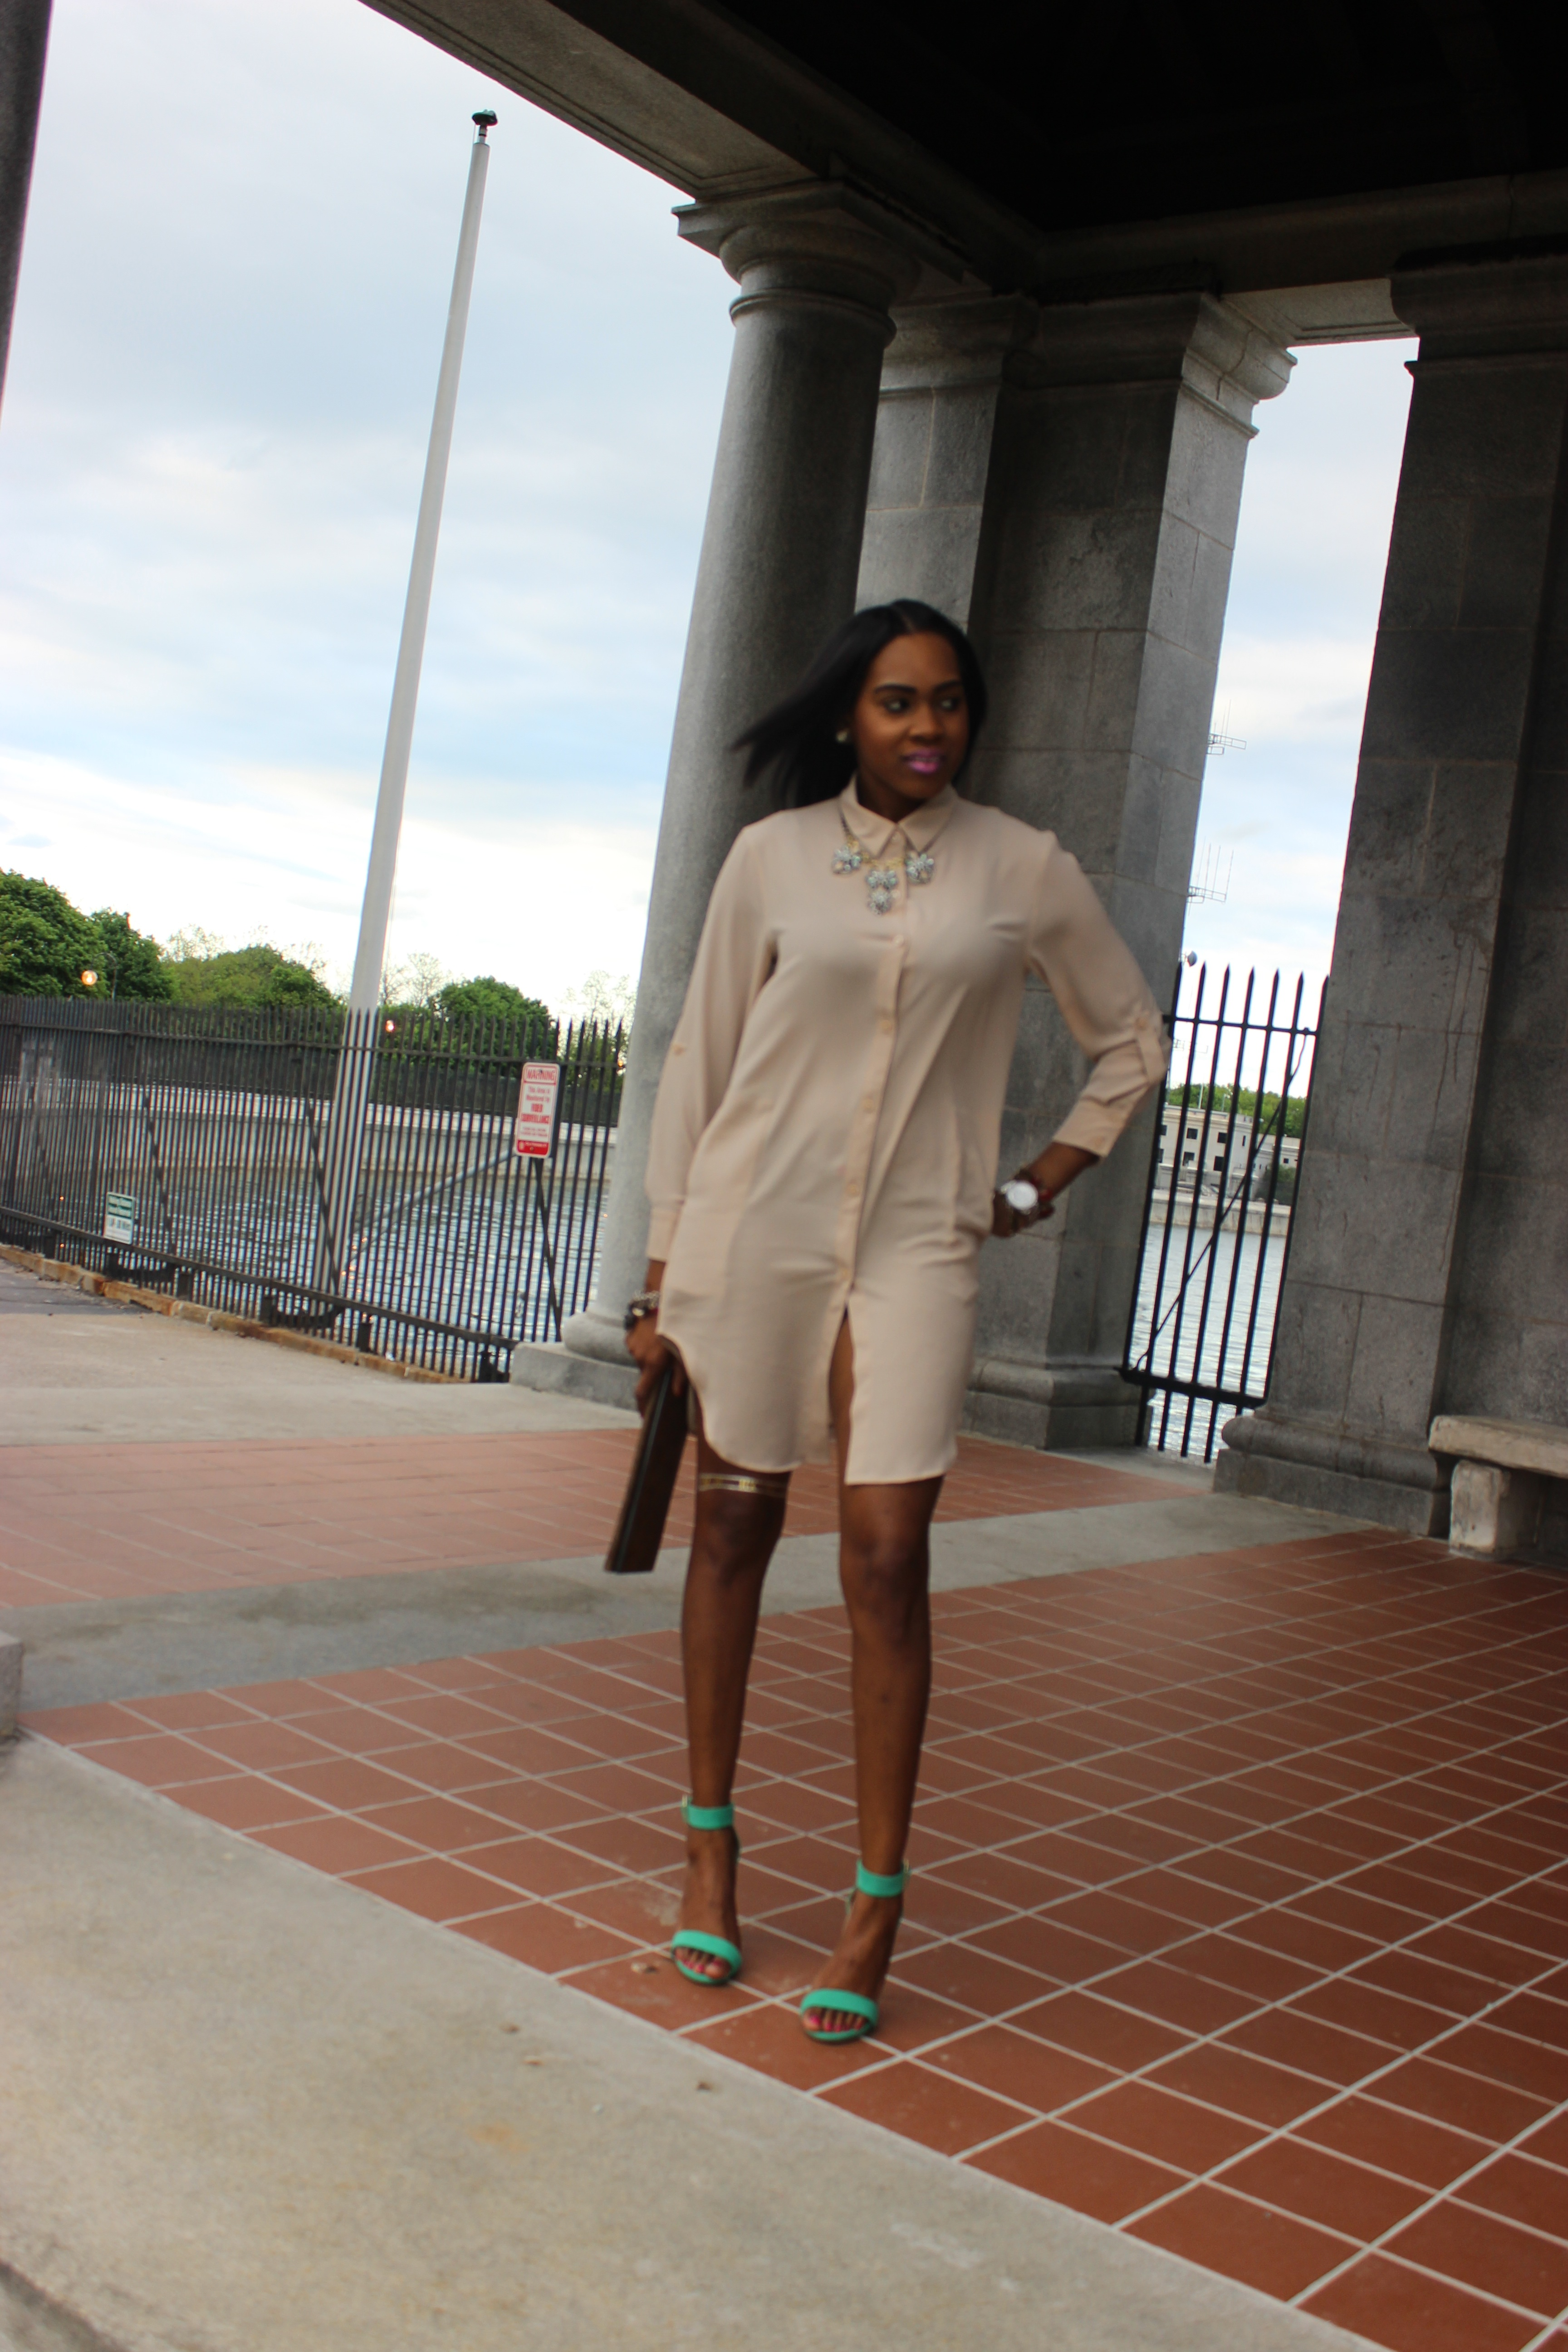 Style-Files-with-Pretty-Price-TJMaxx-Nude-Shirt-Dress-Nude-Tunic-just-fab-Paean-seamfoam-mint-green-ankle-strap-sandals-forever-21-distressed-cut-off-shorts-Pink-turban-justfab-Taesha-leopard-print-lace-up-heel-sandals-8